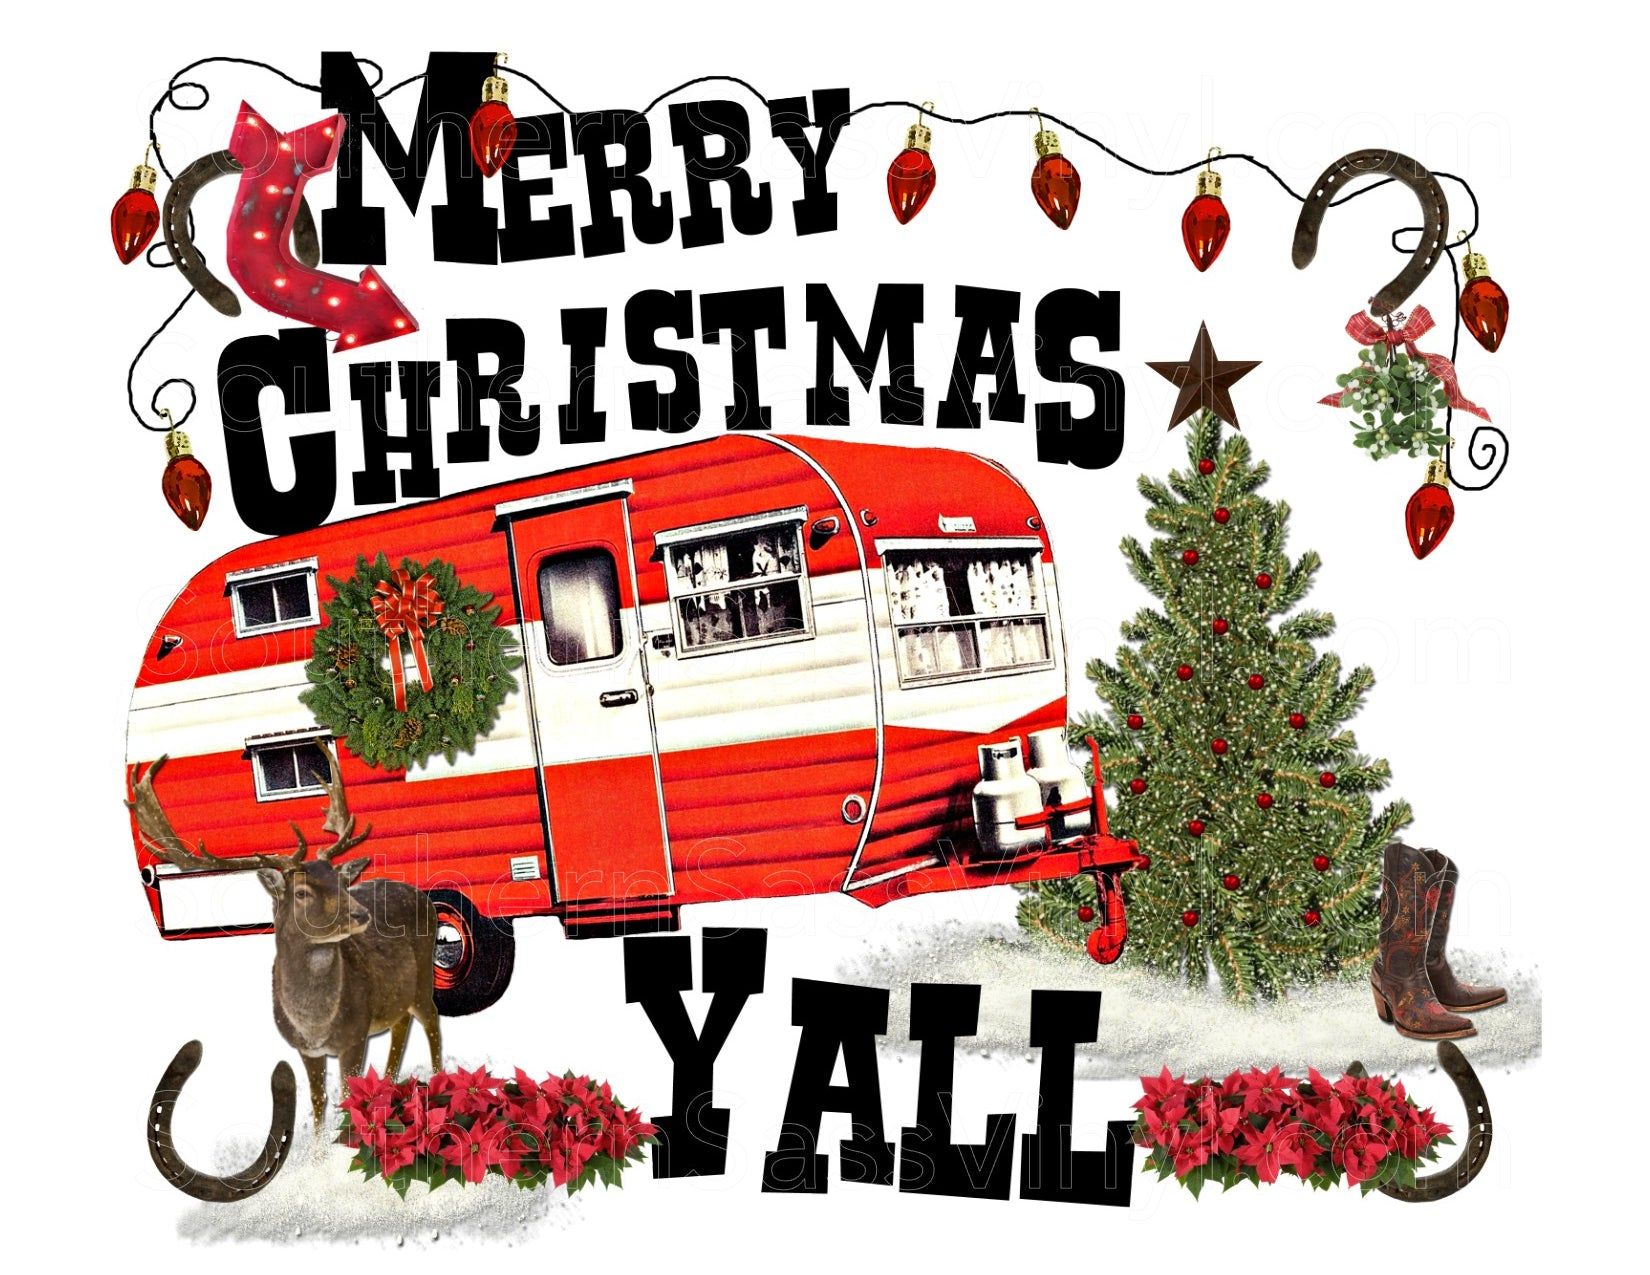 Merry Christmas Yall.Merry Christmas Yall Red Ready To Press Transfer